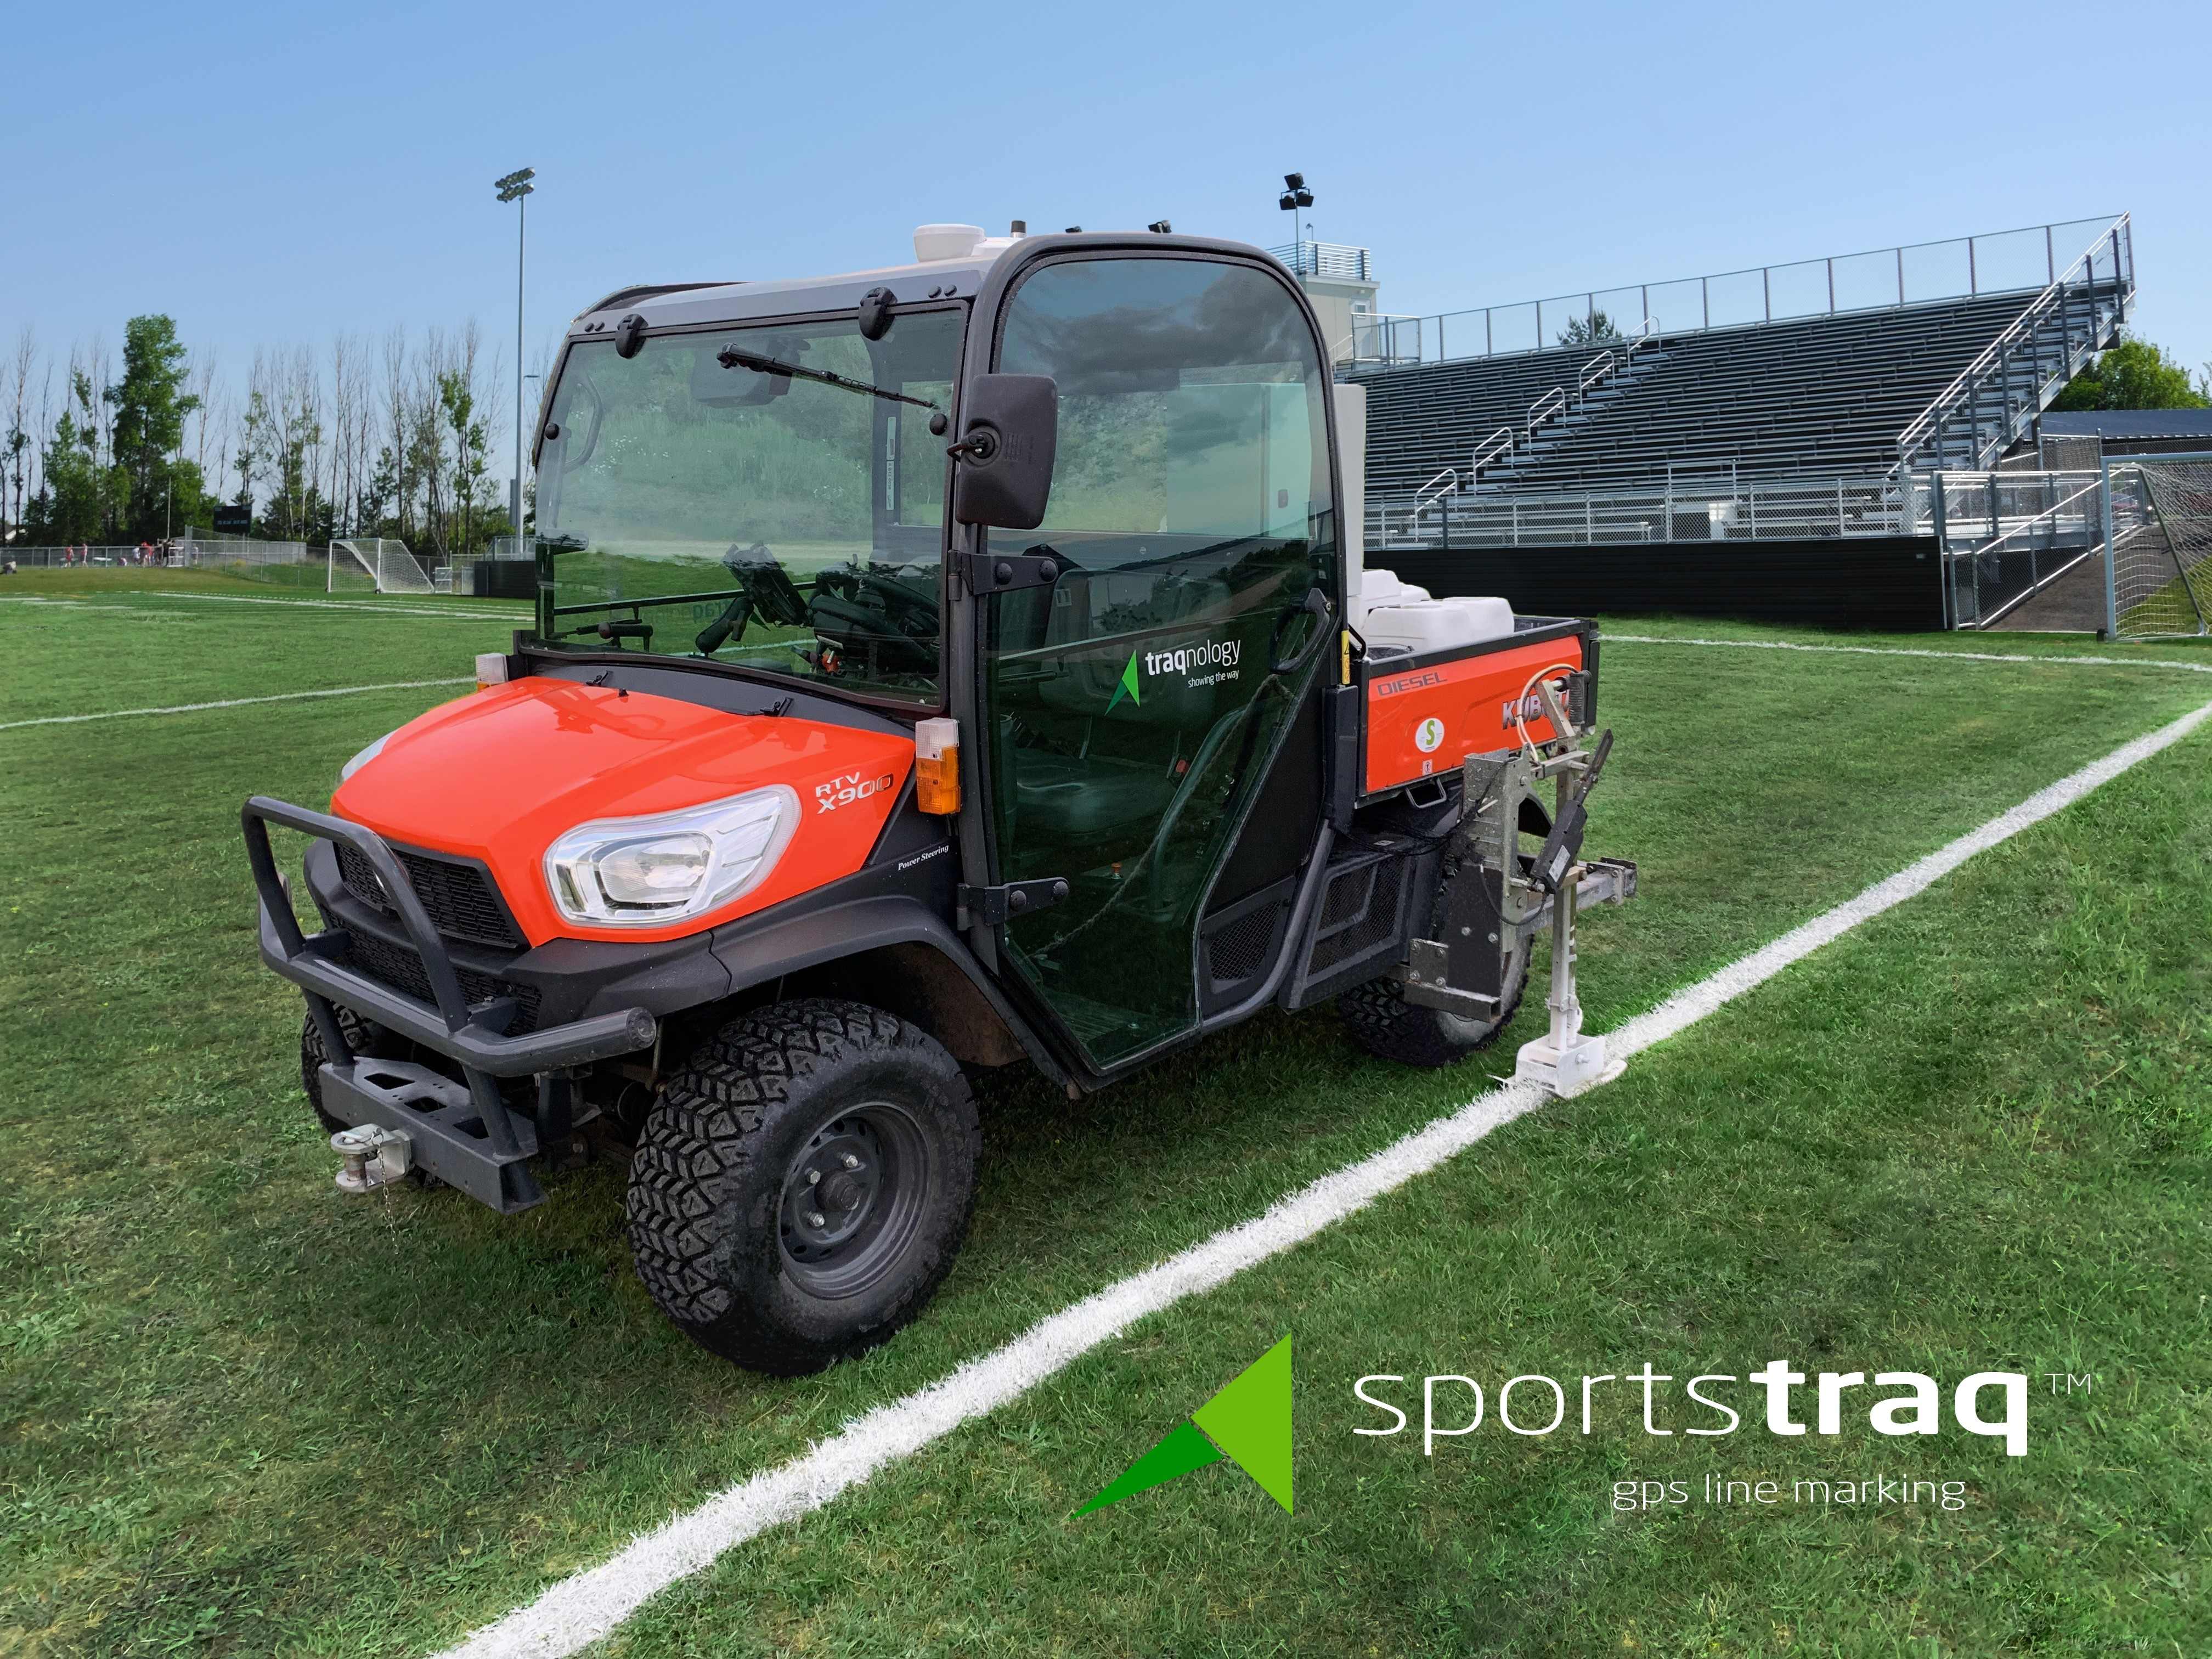 SportsTraq GPS Auto Steering & Line Marking for Athletic Fields